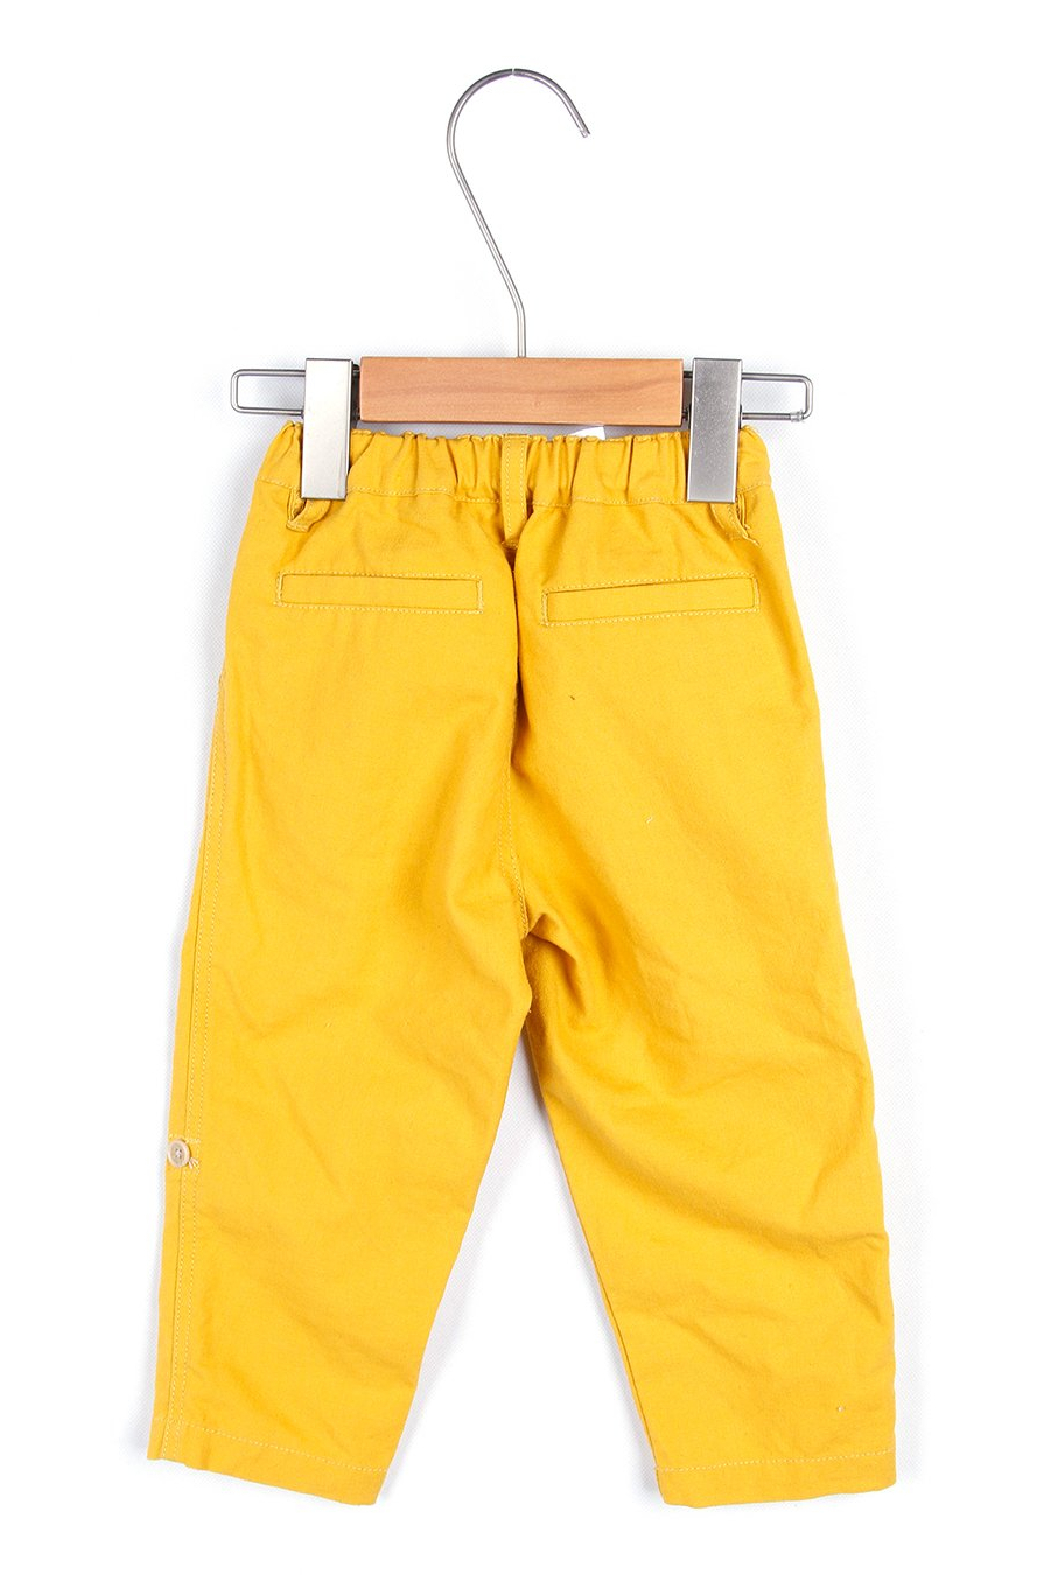 Bitz Kids  Yellow Linen Roll-up Pants - Front Full Image